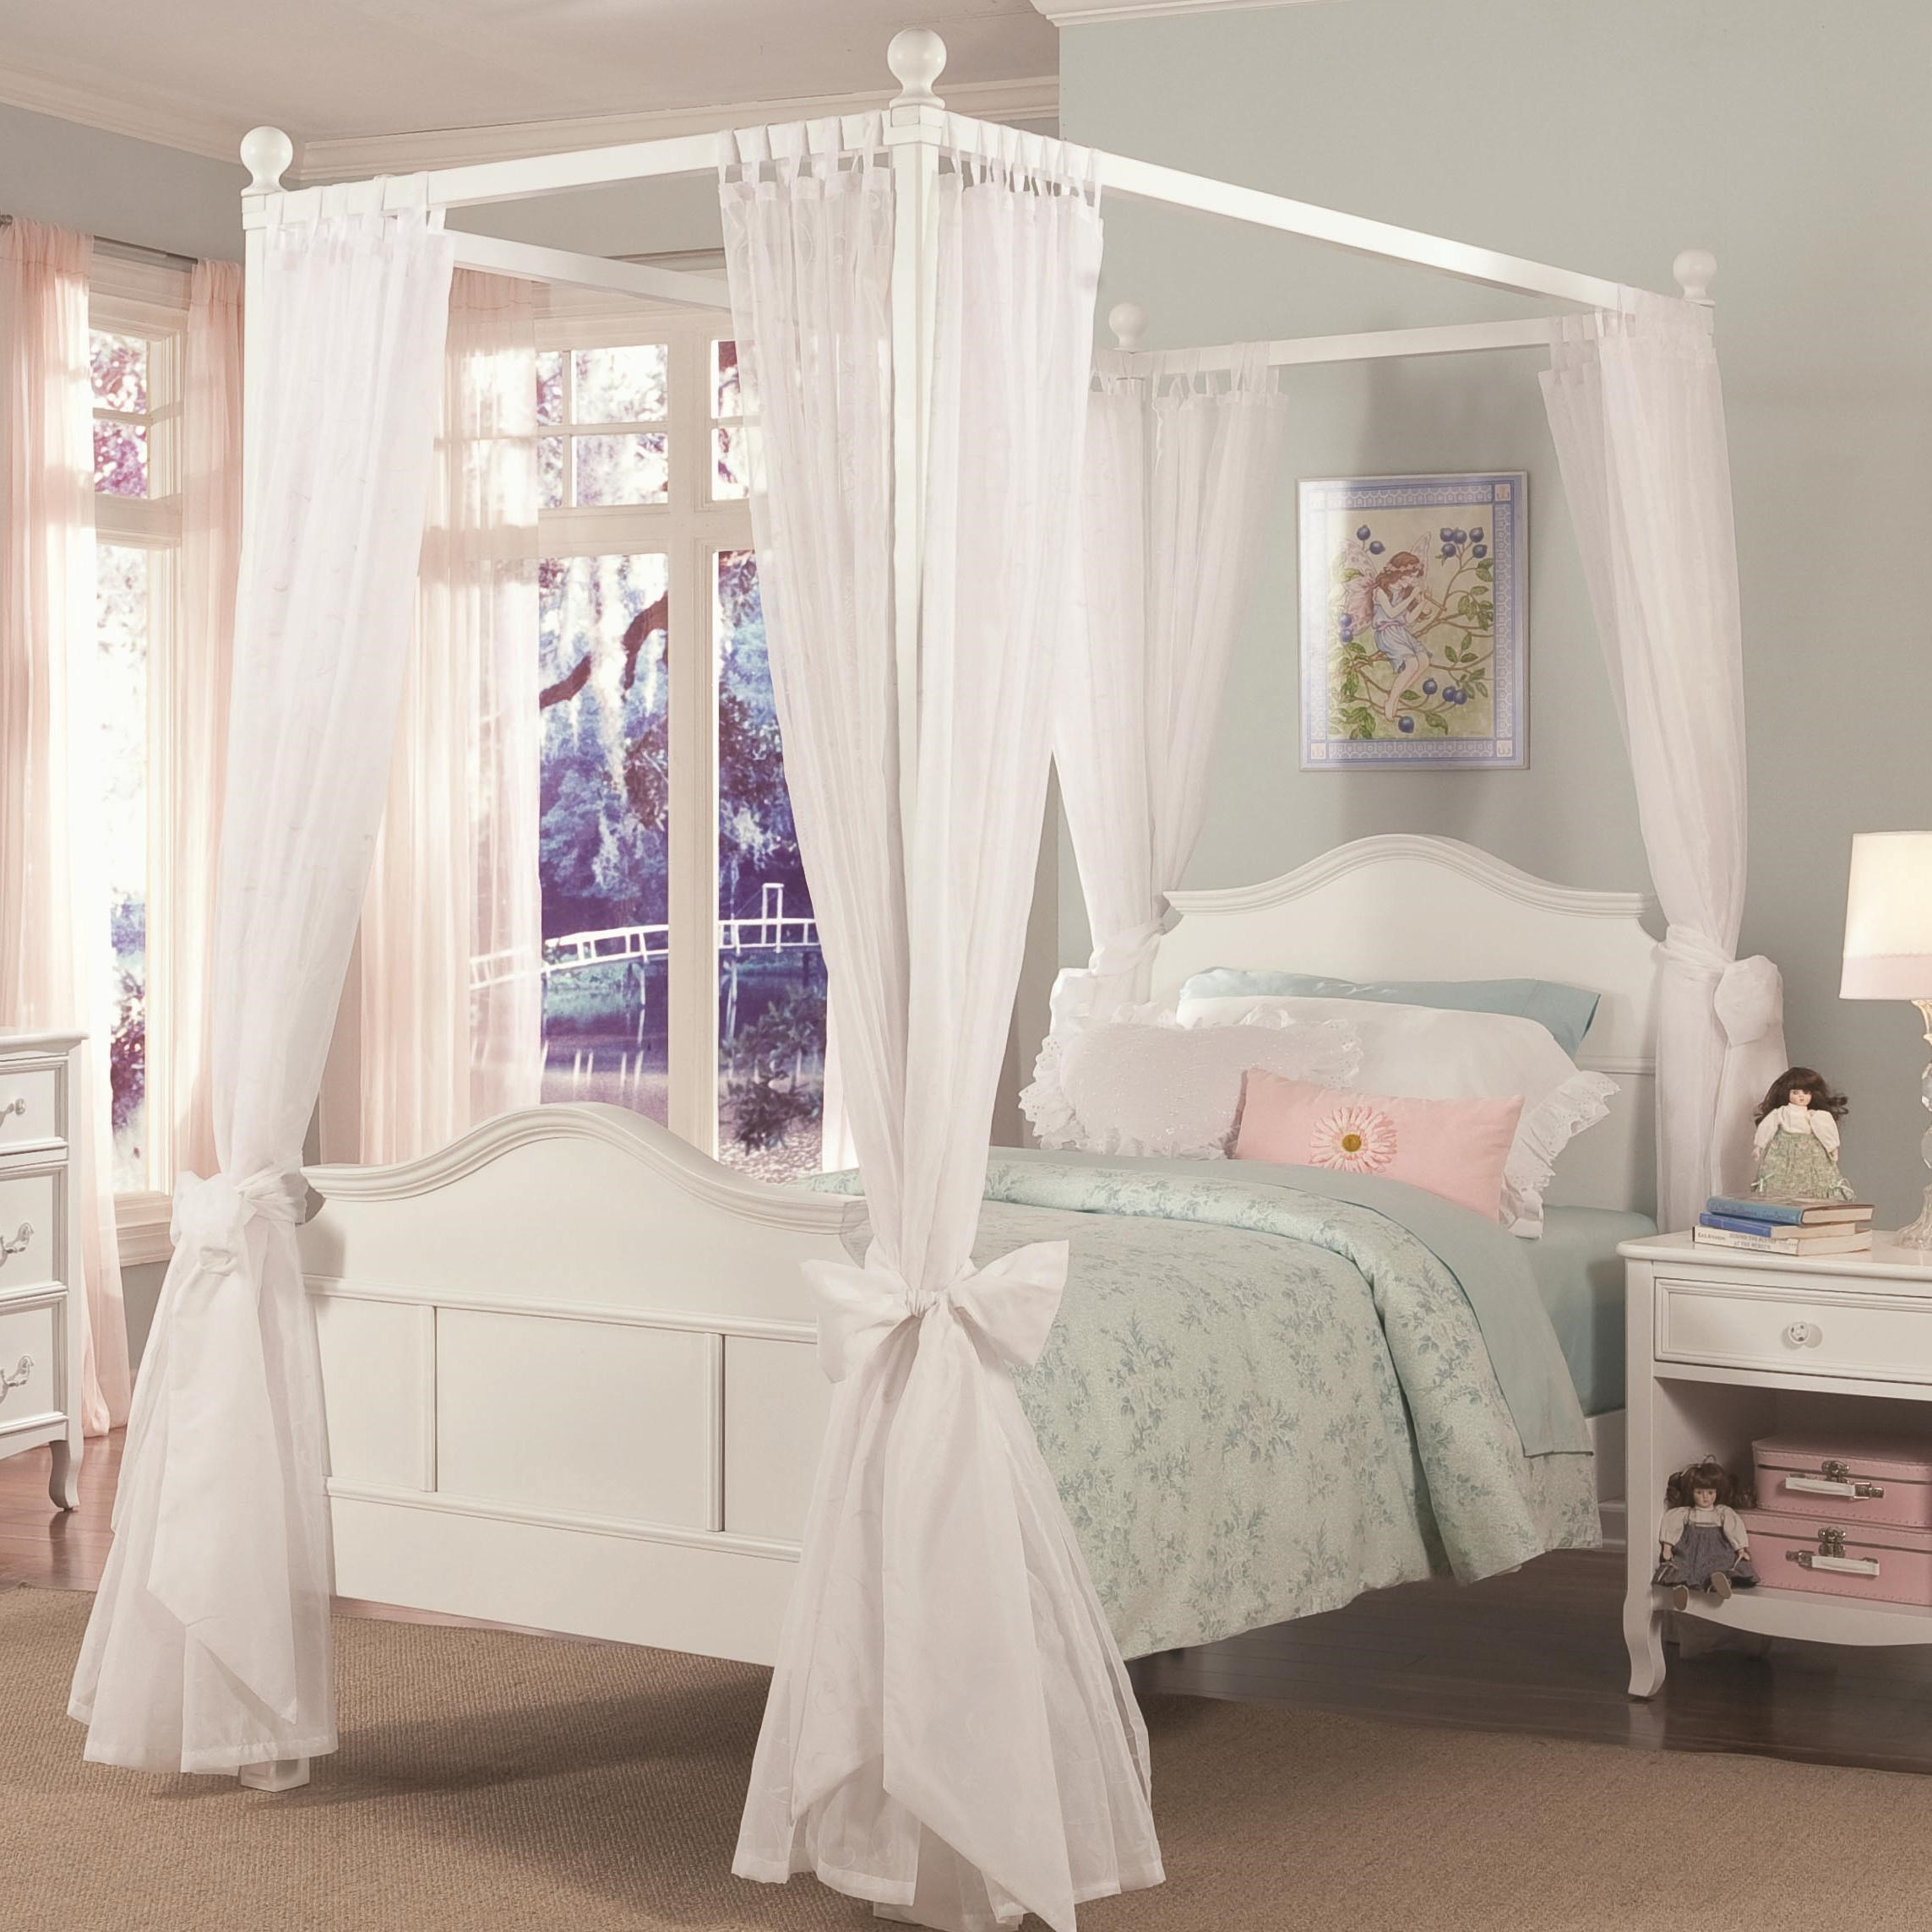 Bolton Emma Emma Twin Four Poster with Tall Headboard & Bolton Emma Emma Twin Four Poster with Tall Headboard | Colderu0027s ...